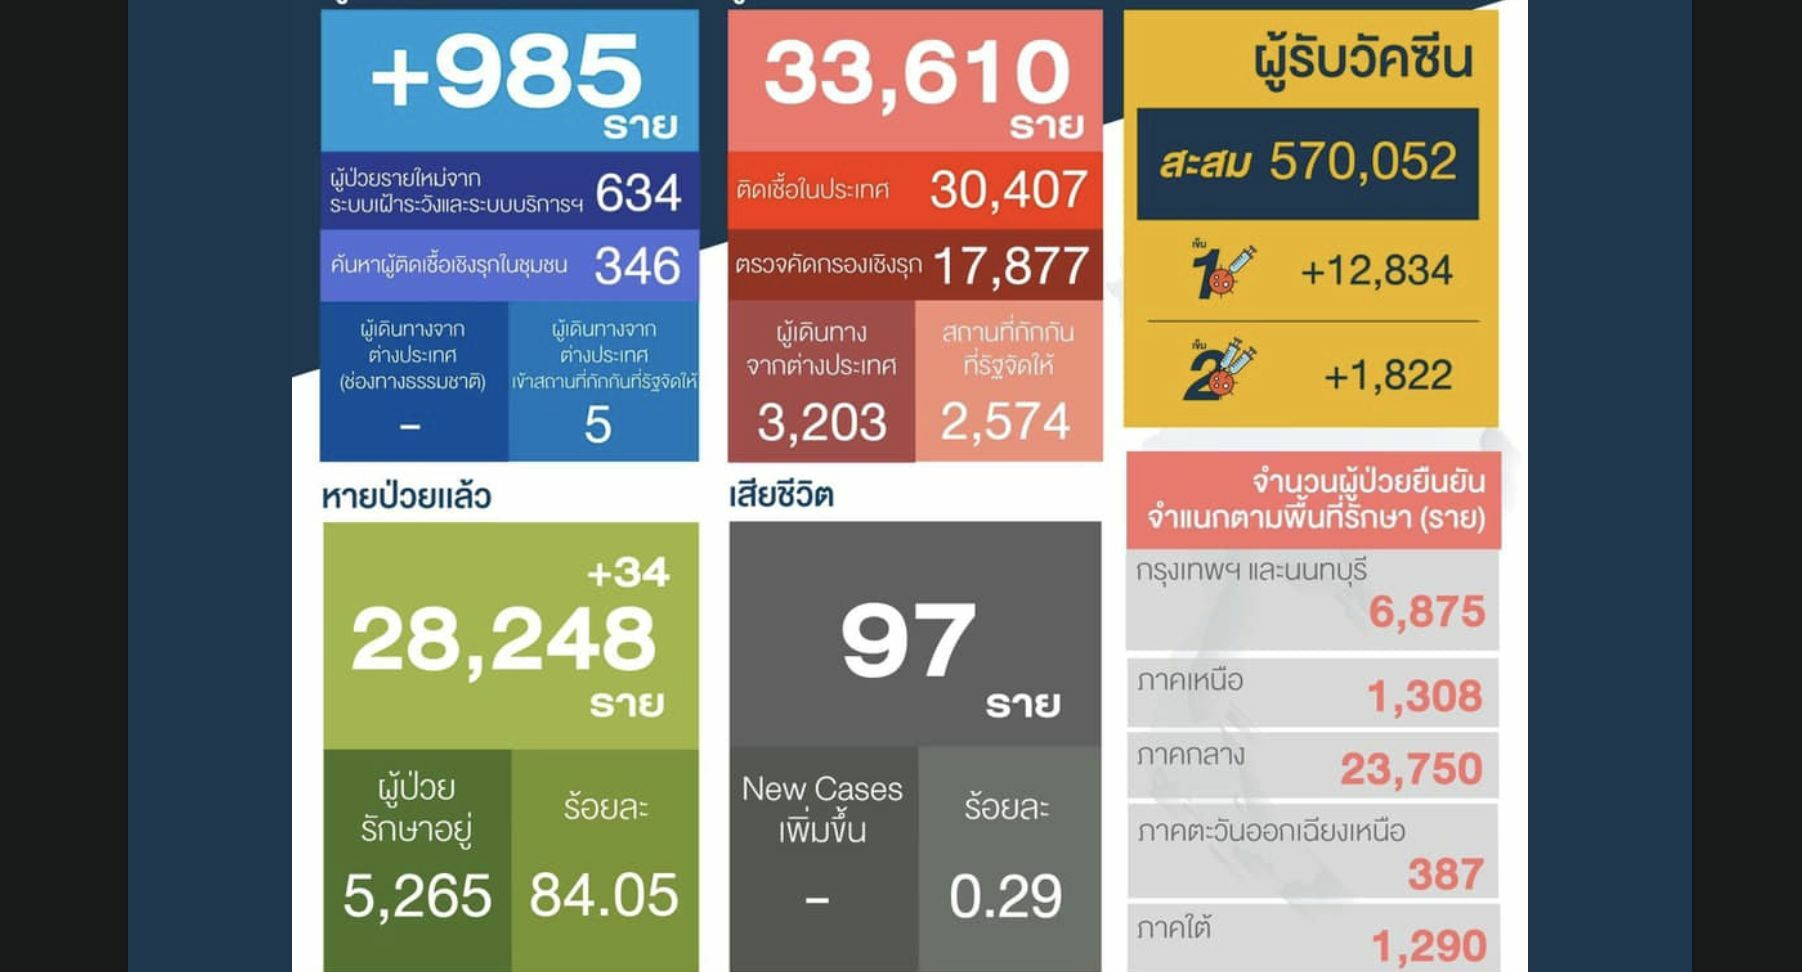 Covid UPDATE: 985 new infections in Thailand, a small rise since yesterday | News by Thaiger